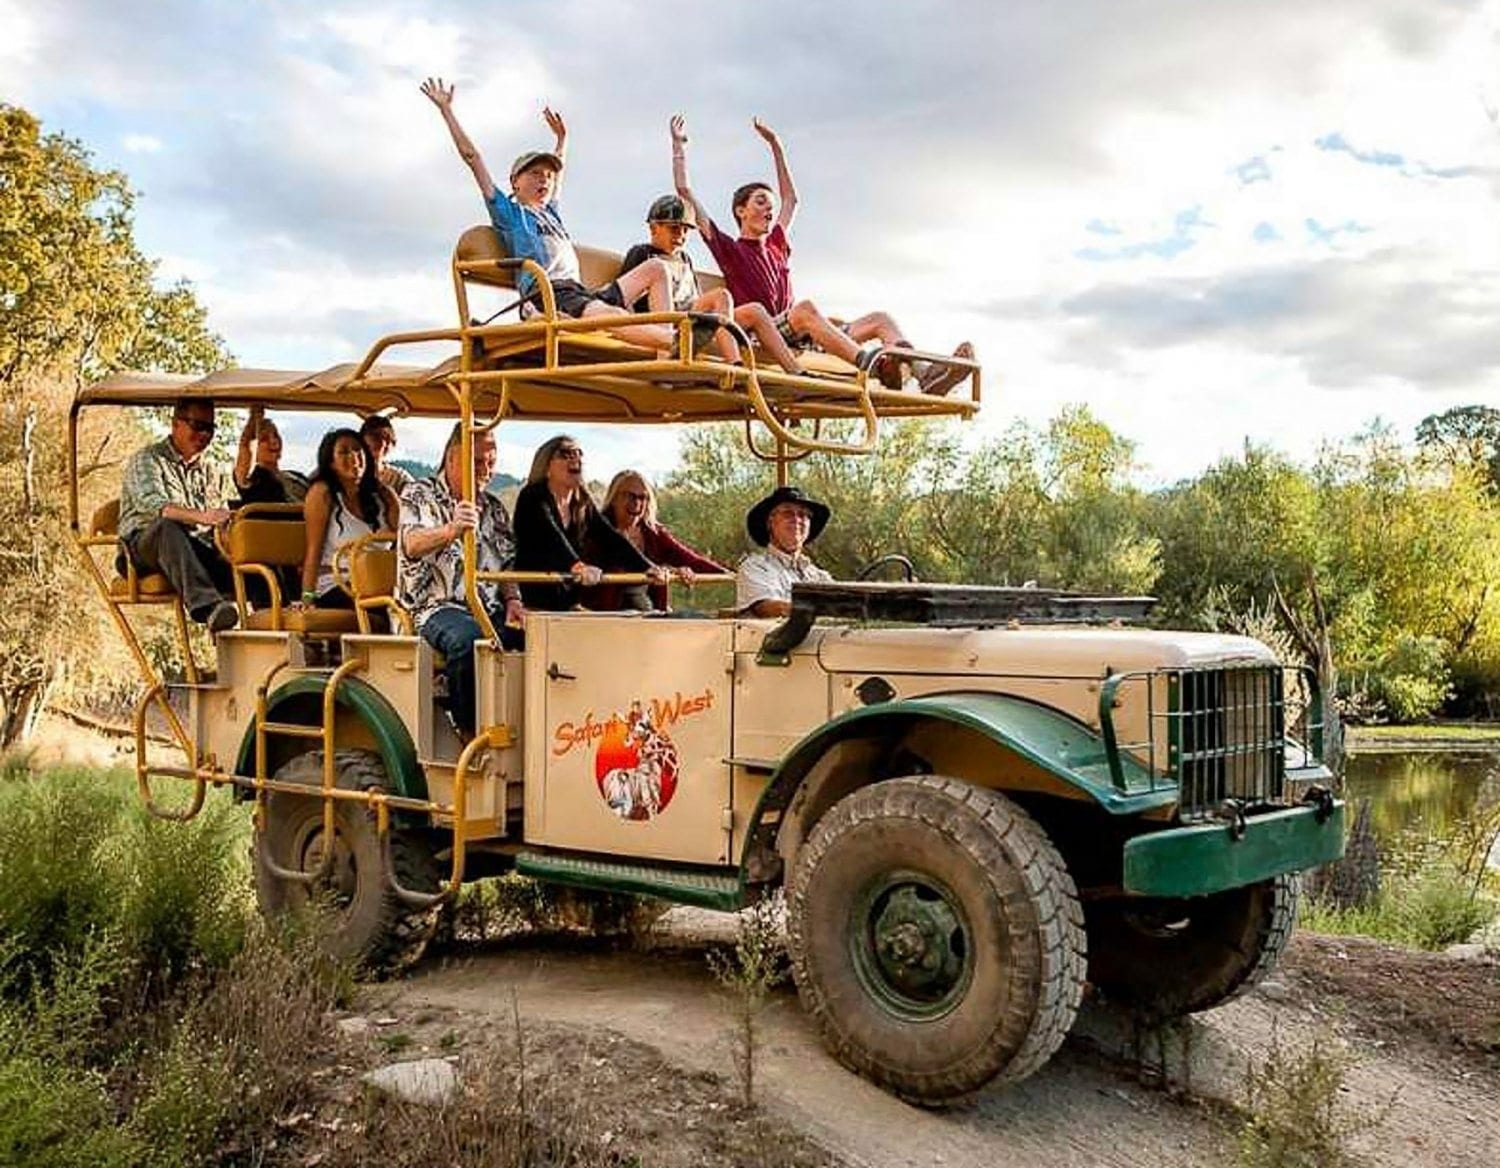 Safari West Photo Camp | Kids Summer Photography Camp | The Image Flow